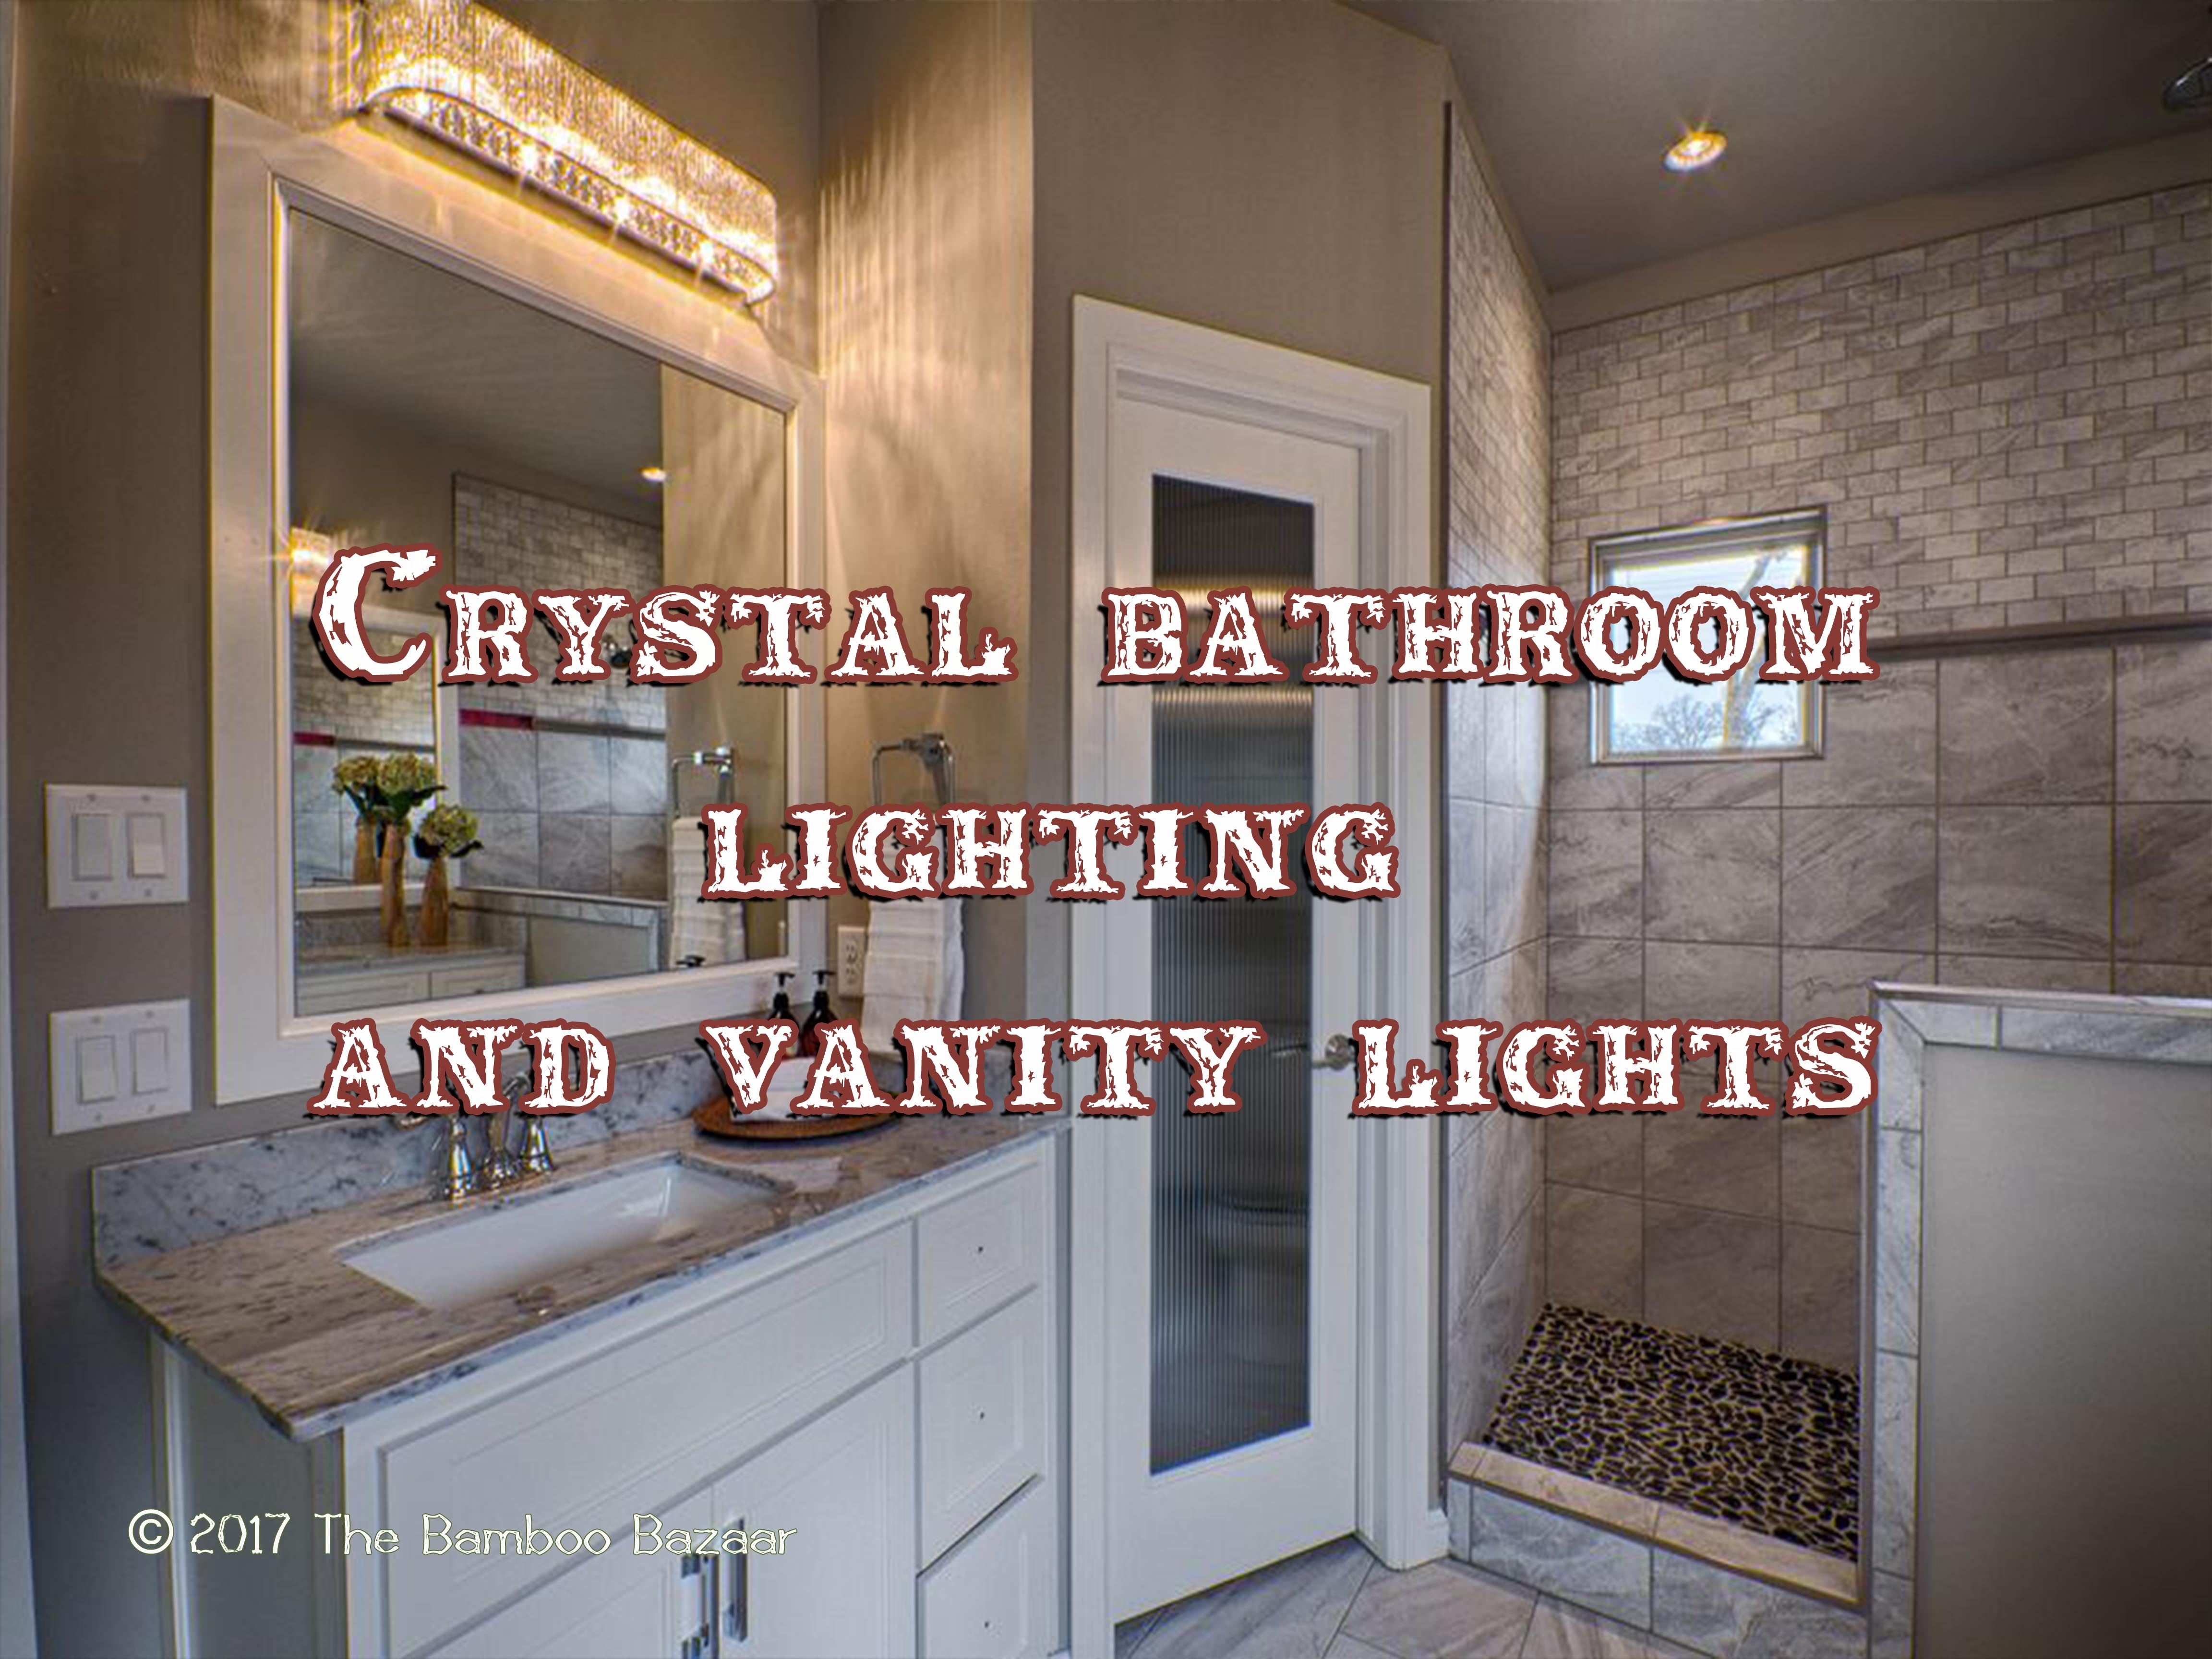 Crystal Bathroom Lighting Amp Vanity Lights A Guide To The